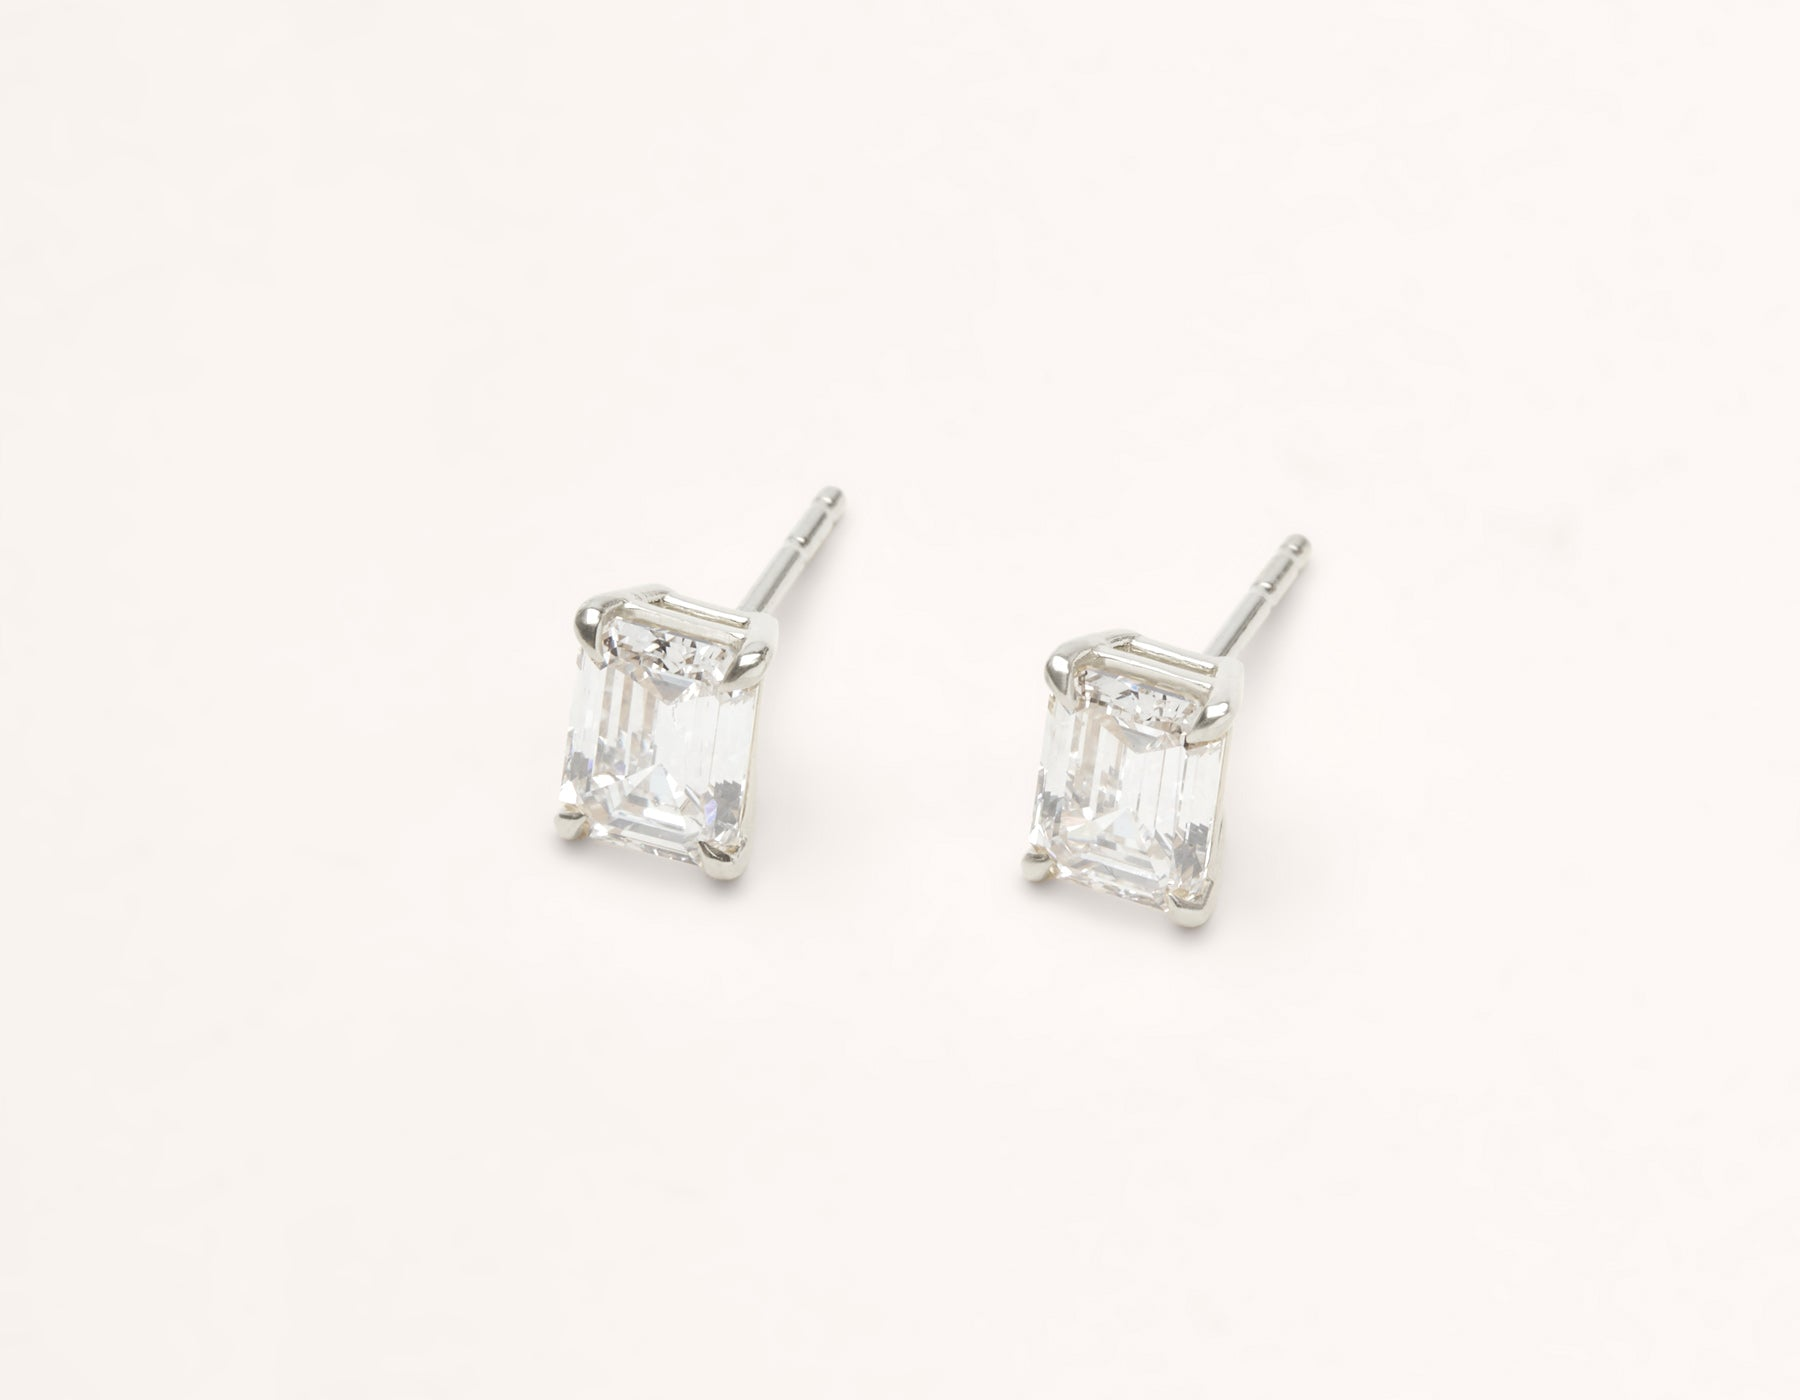 modern minimalist 18k solid gold 1 ct Emerald Studs diamond earrings by Vrai & Oro, 18K White Gold